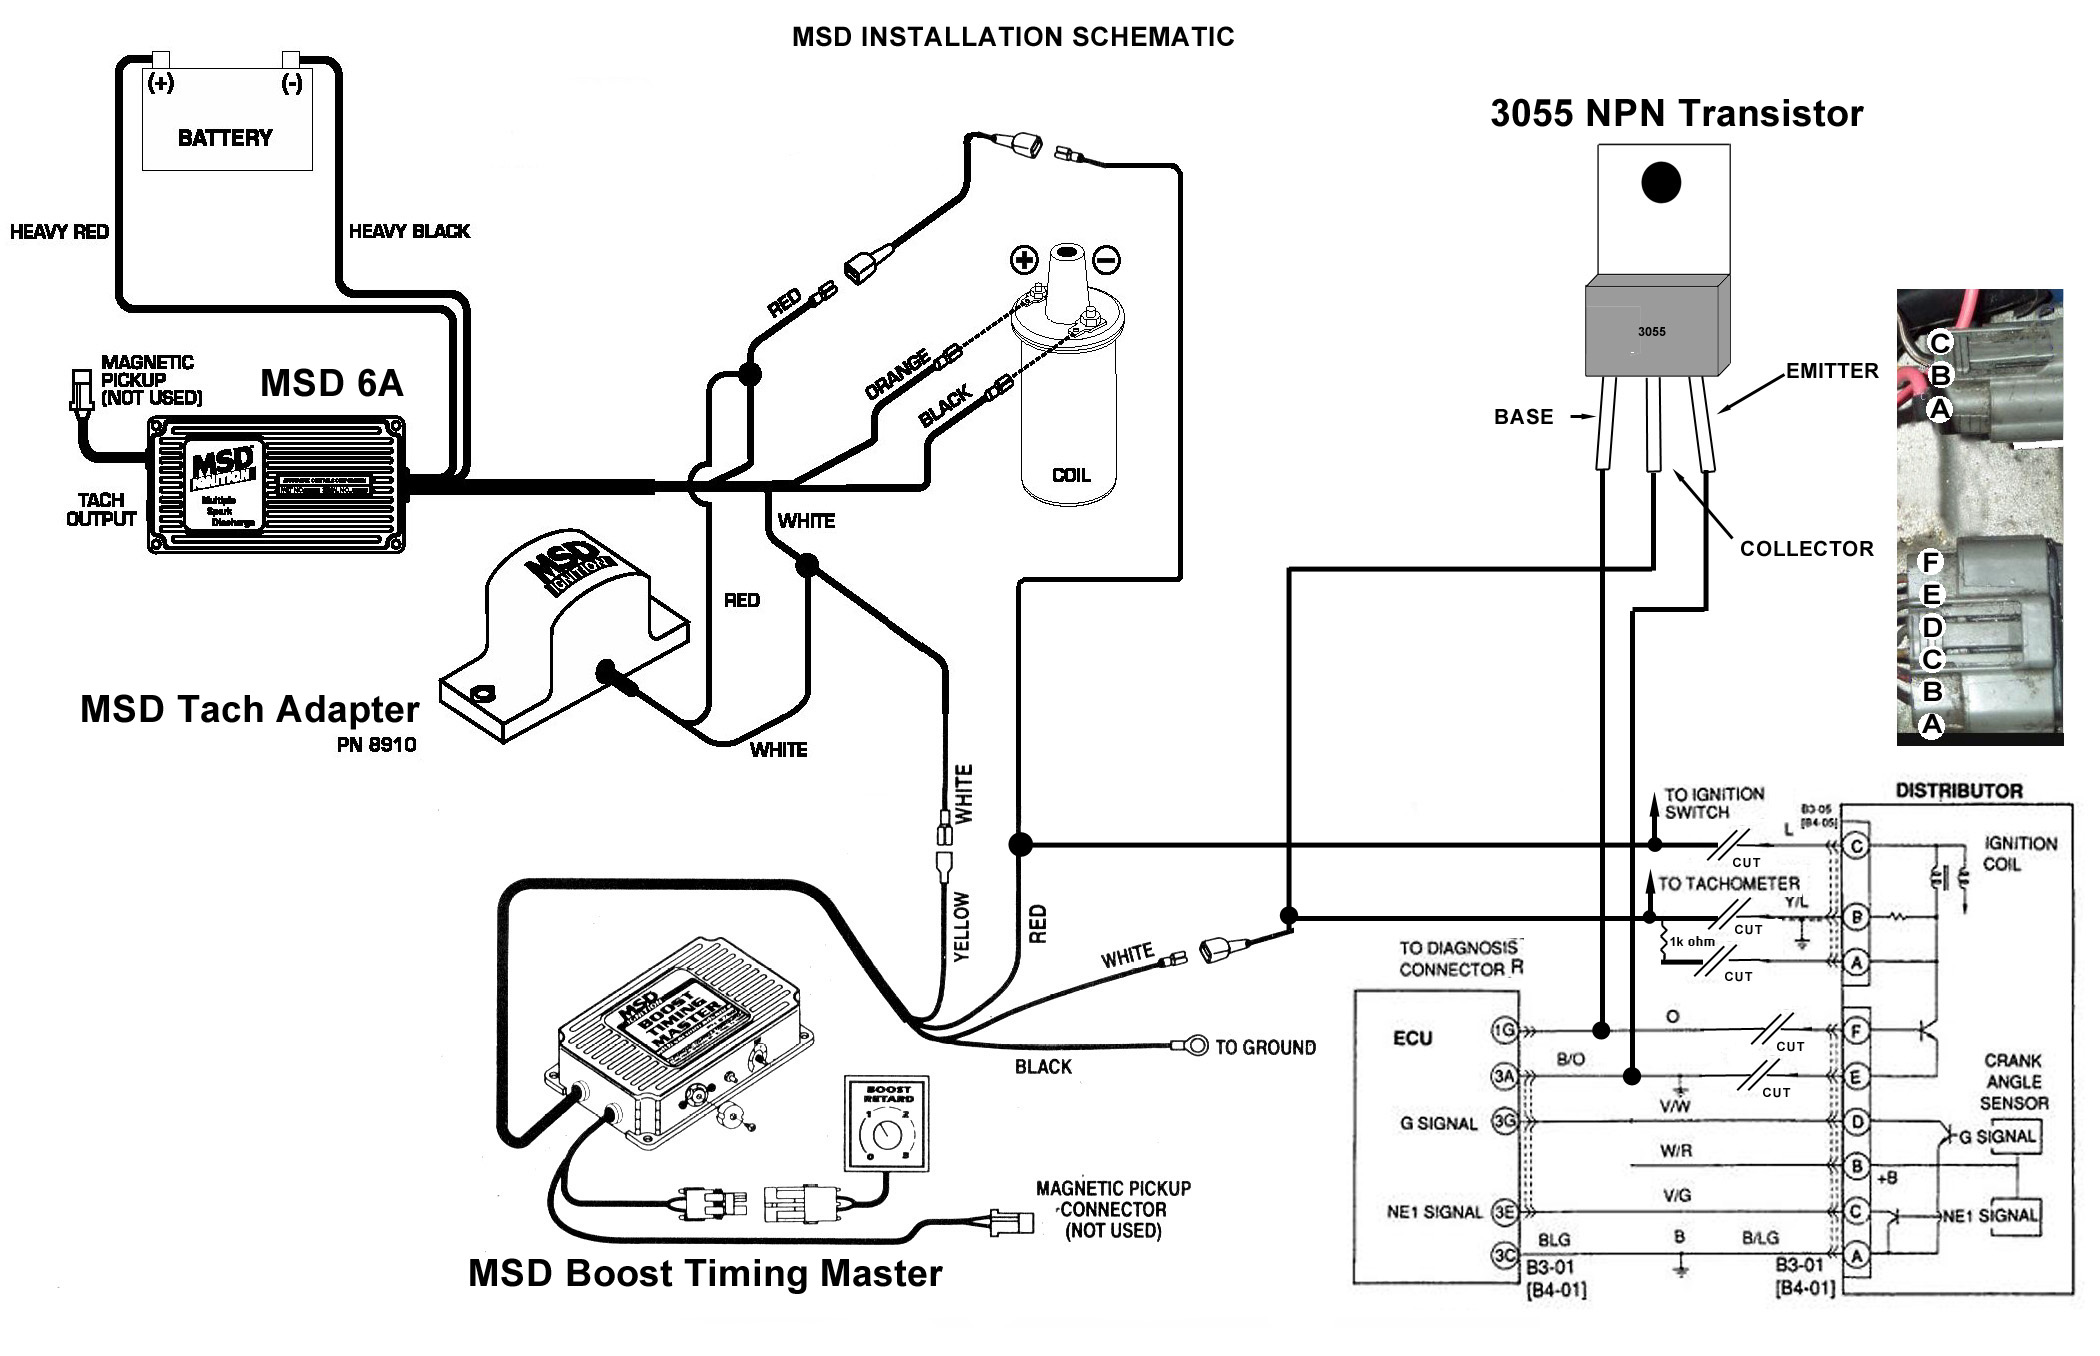 Mx6 Radio Wiring Diagram Data Speaker Circuit Simple Rx300 Mazda 1993